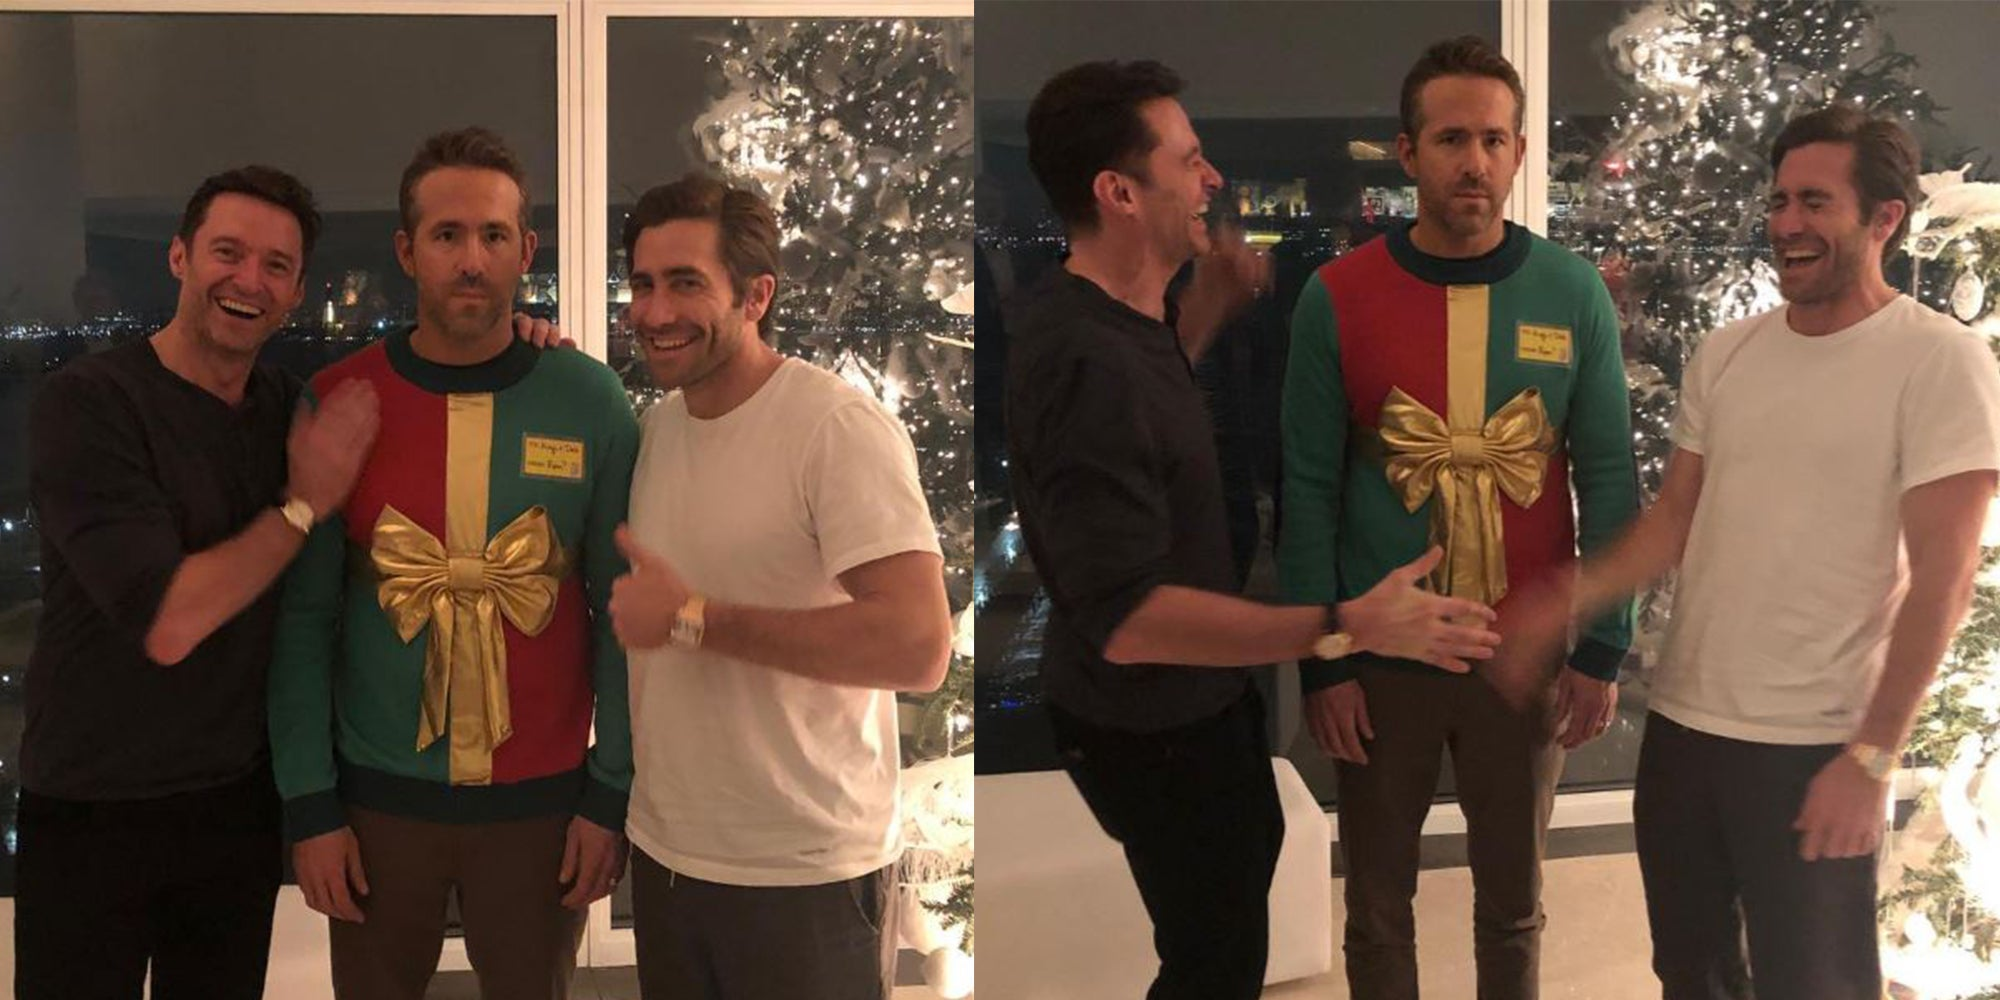 Hugh Jackman and Jake Gyllenhaal have hilariously trolled